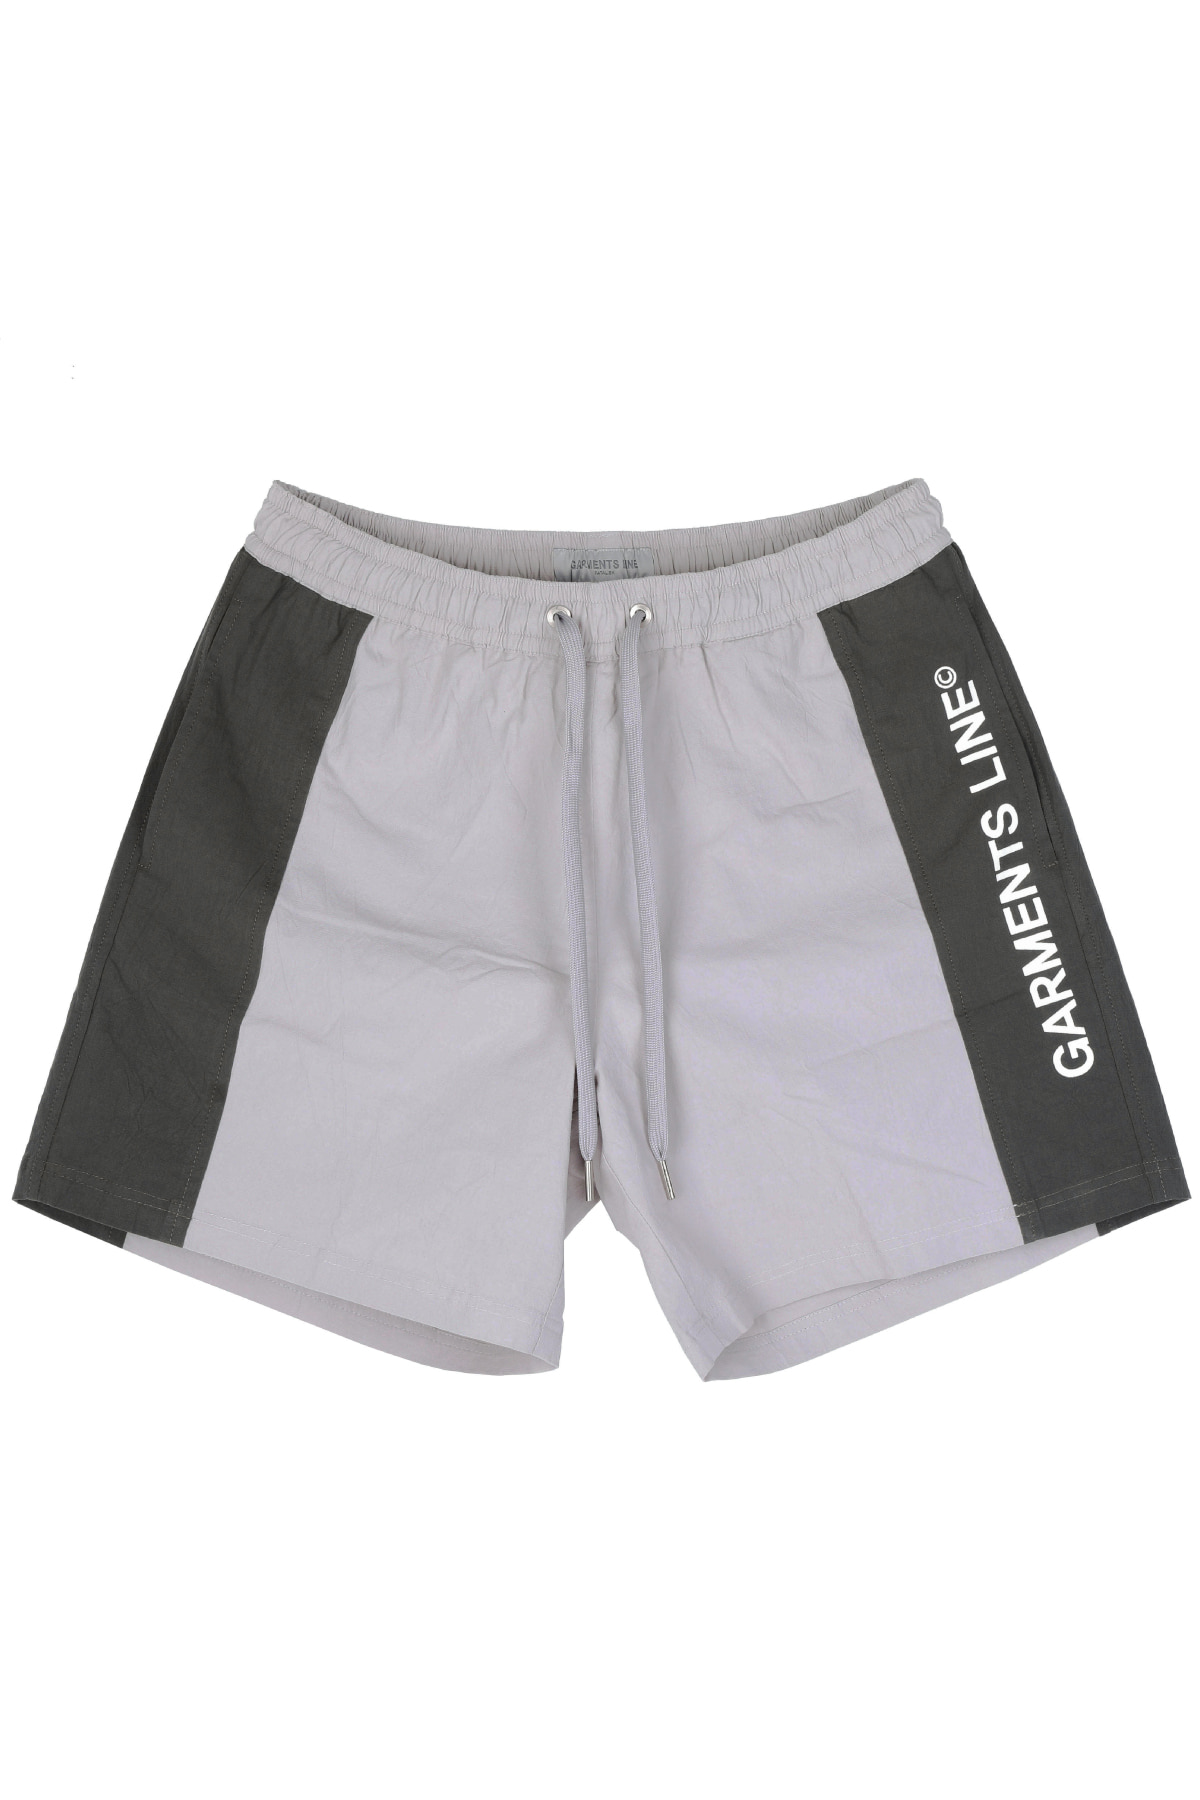 #G009 color combi short pants (charcoal)